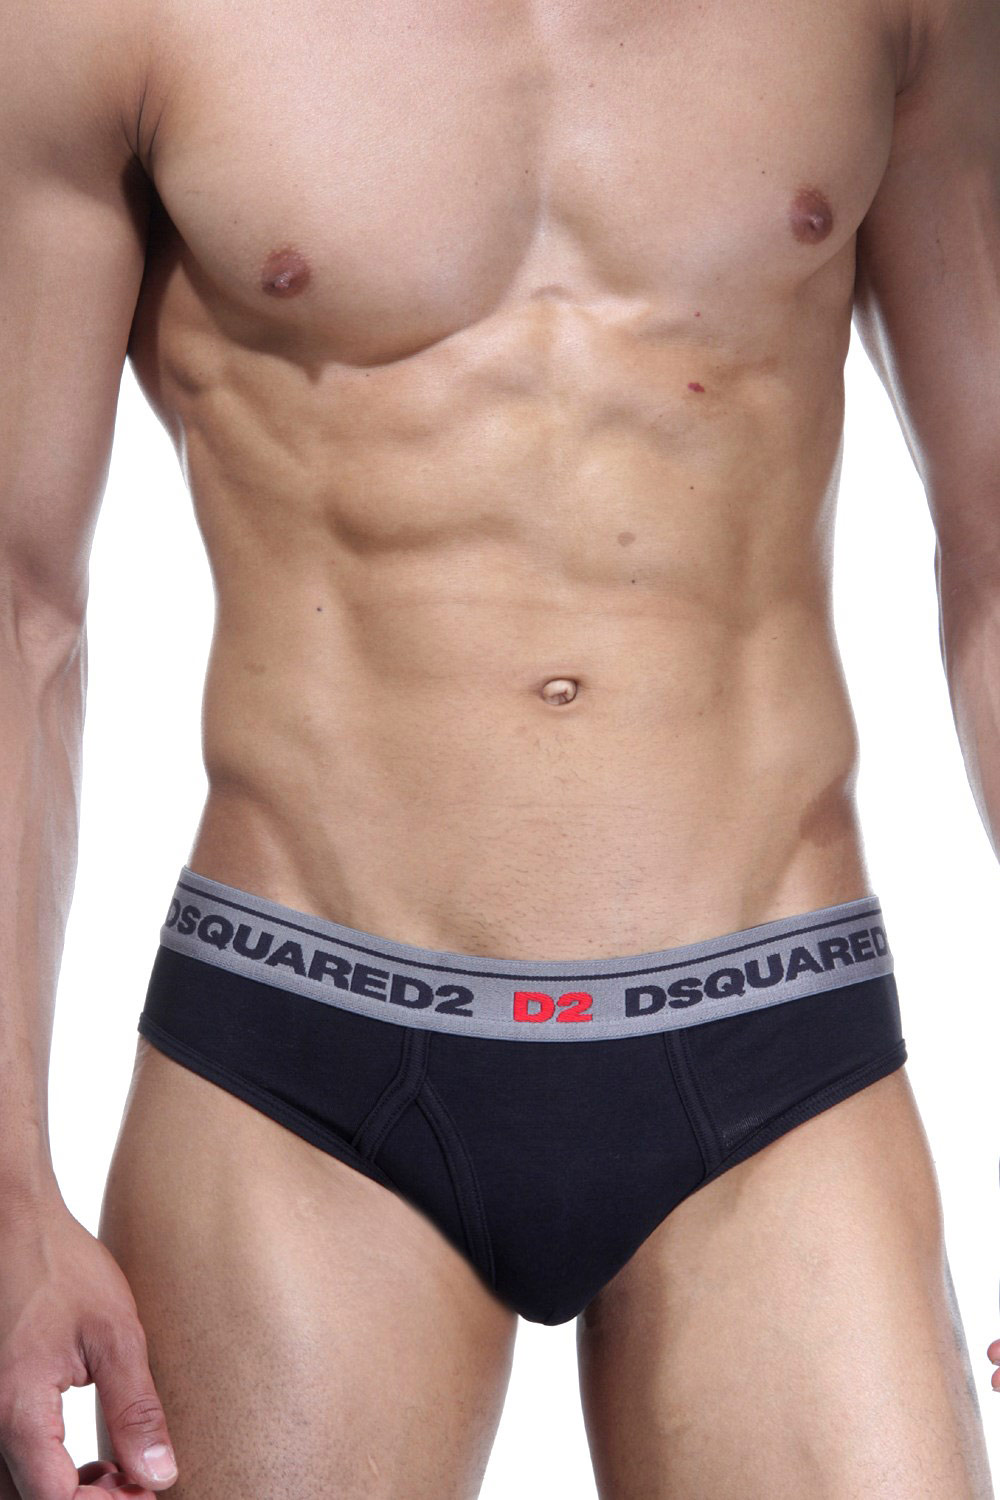 DSQUARED2 089 brief at oboy.com